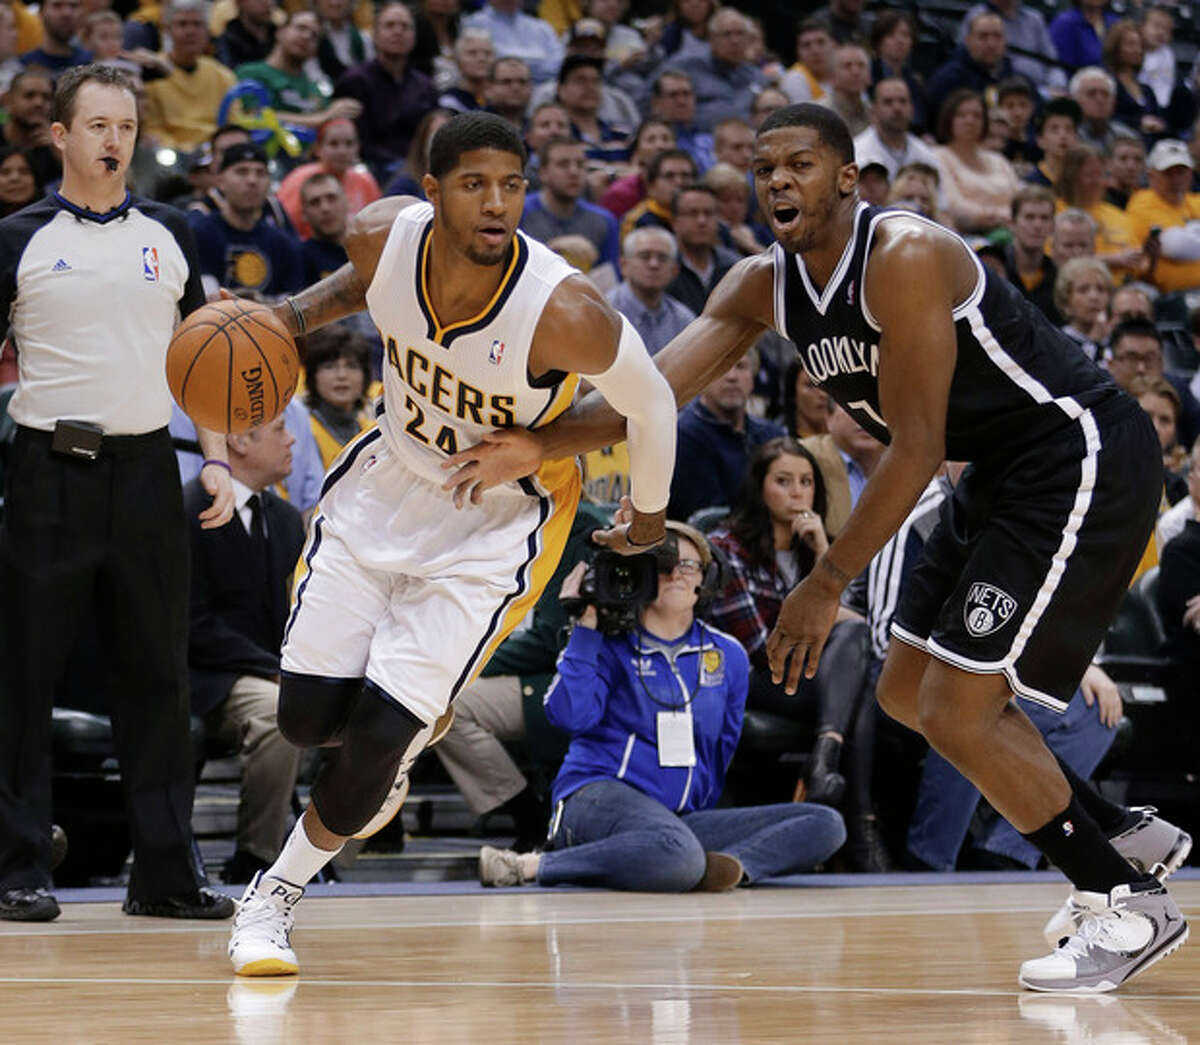 Indiana Pacers' Paul George (24) goes to the basket against Brooklyn Nets' Joe Johnson (7) during the second half of an NBA basketball game Saturday, Dec. 28, 2013, in Indianapolis. Indiana defeated Brooklyn 105-91. (AP Photo/Darron Cummings)